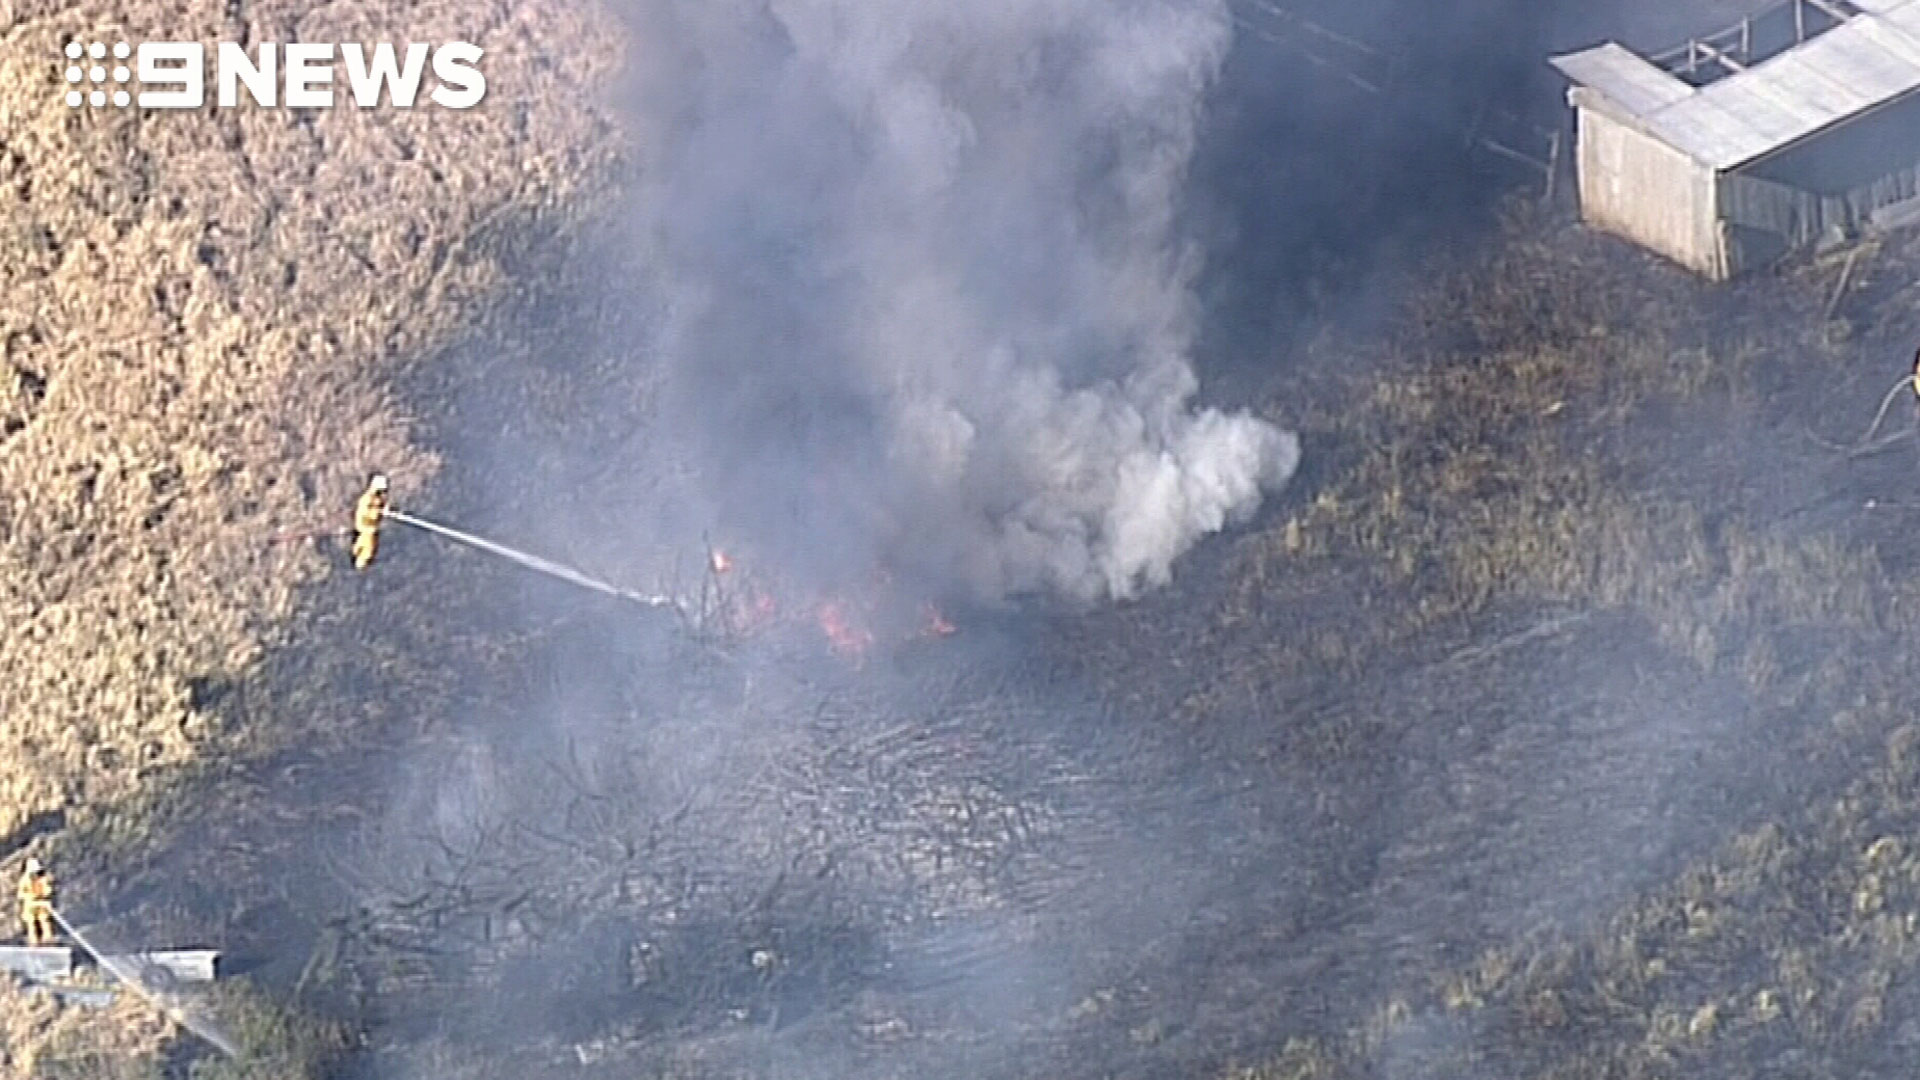 The grass fire is not expected to impact any homes in the area. (9NEWS)